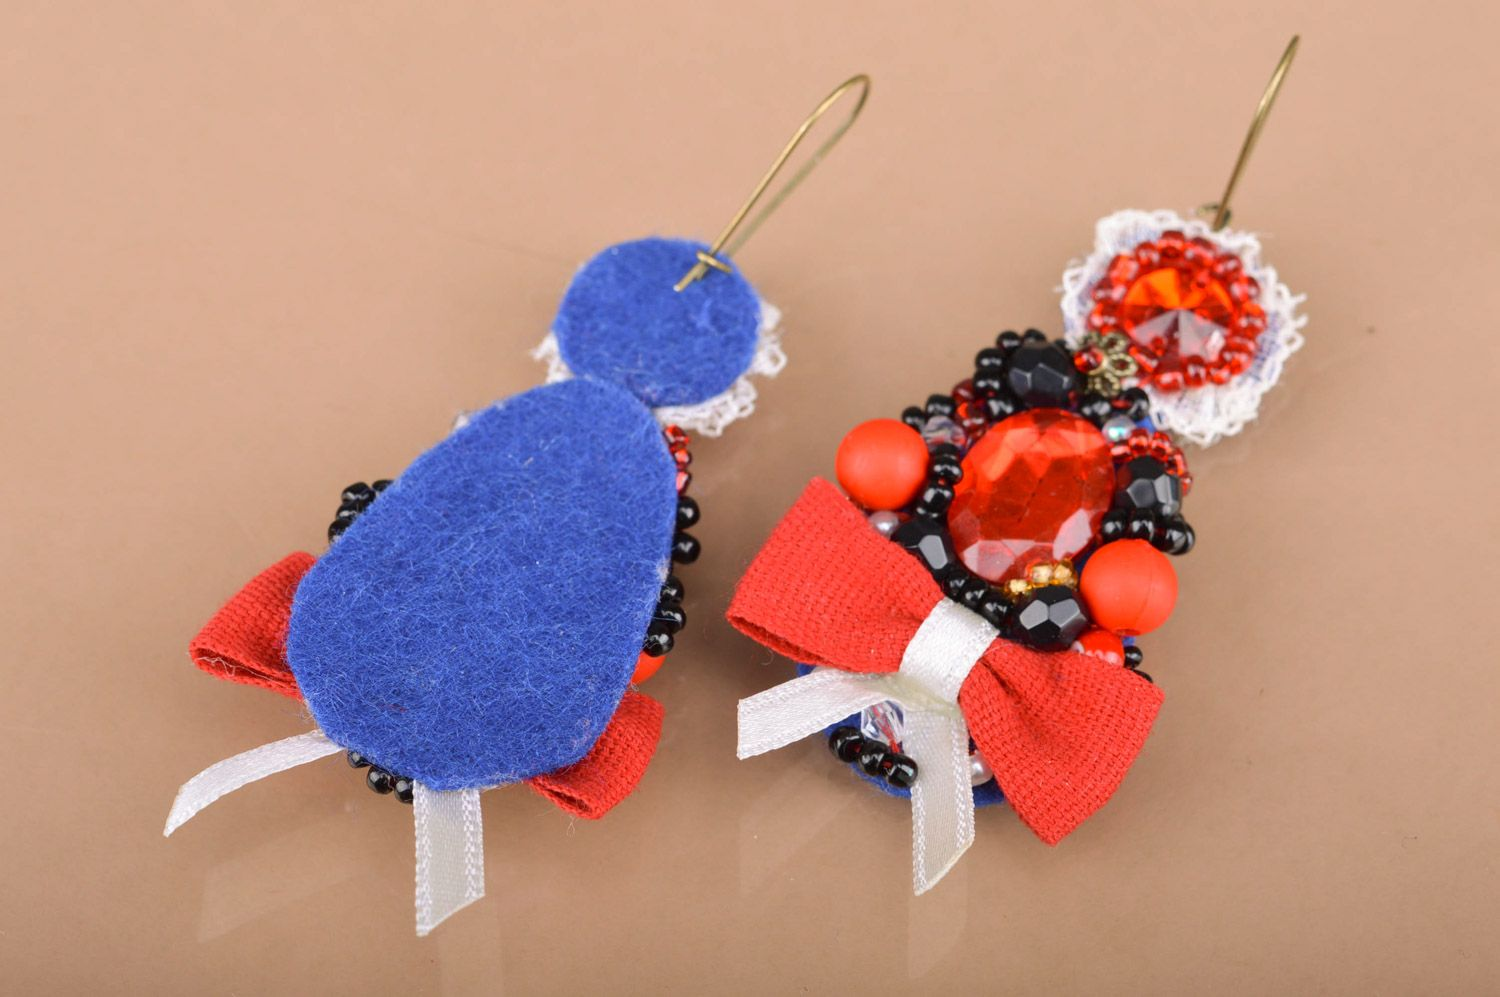 Handmade festive beaded dangle earrings with bows in red color palette for women photo 3